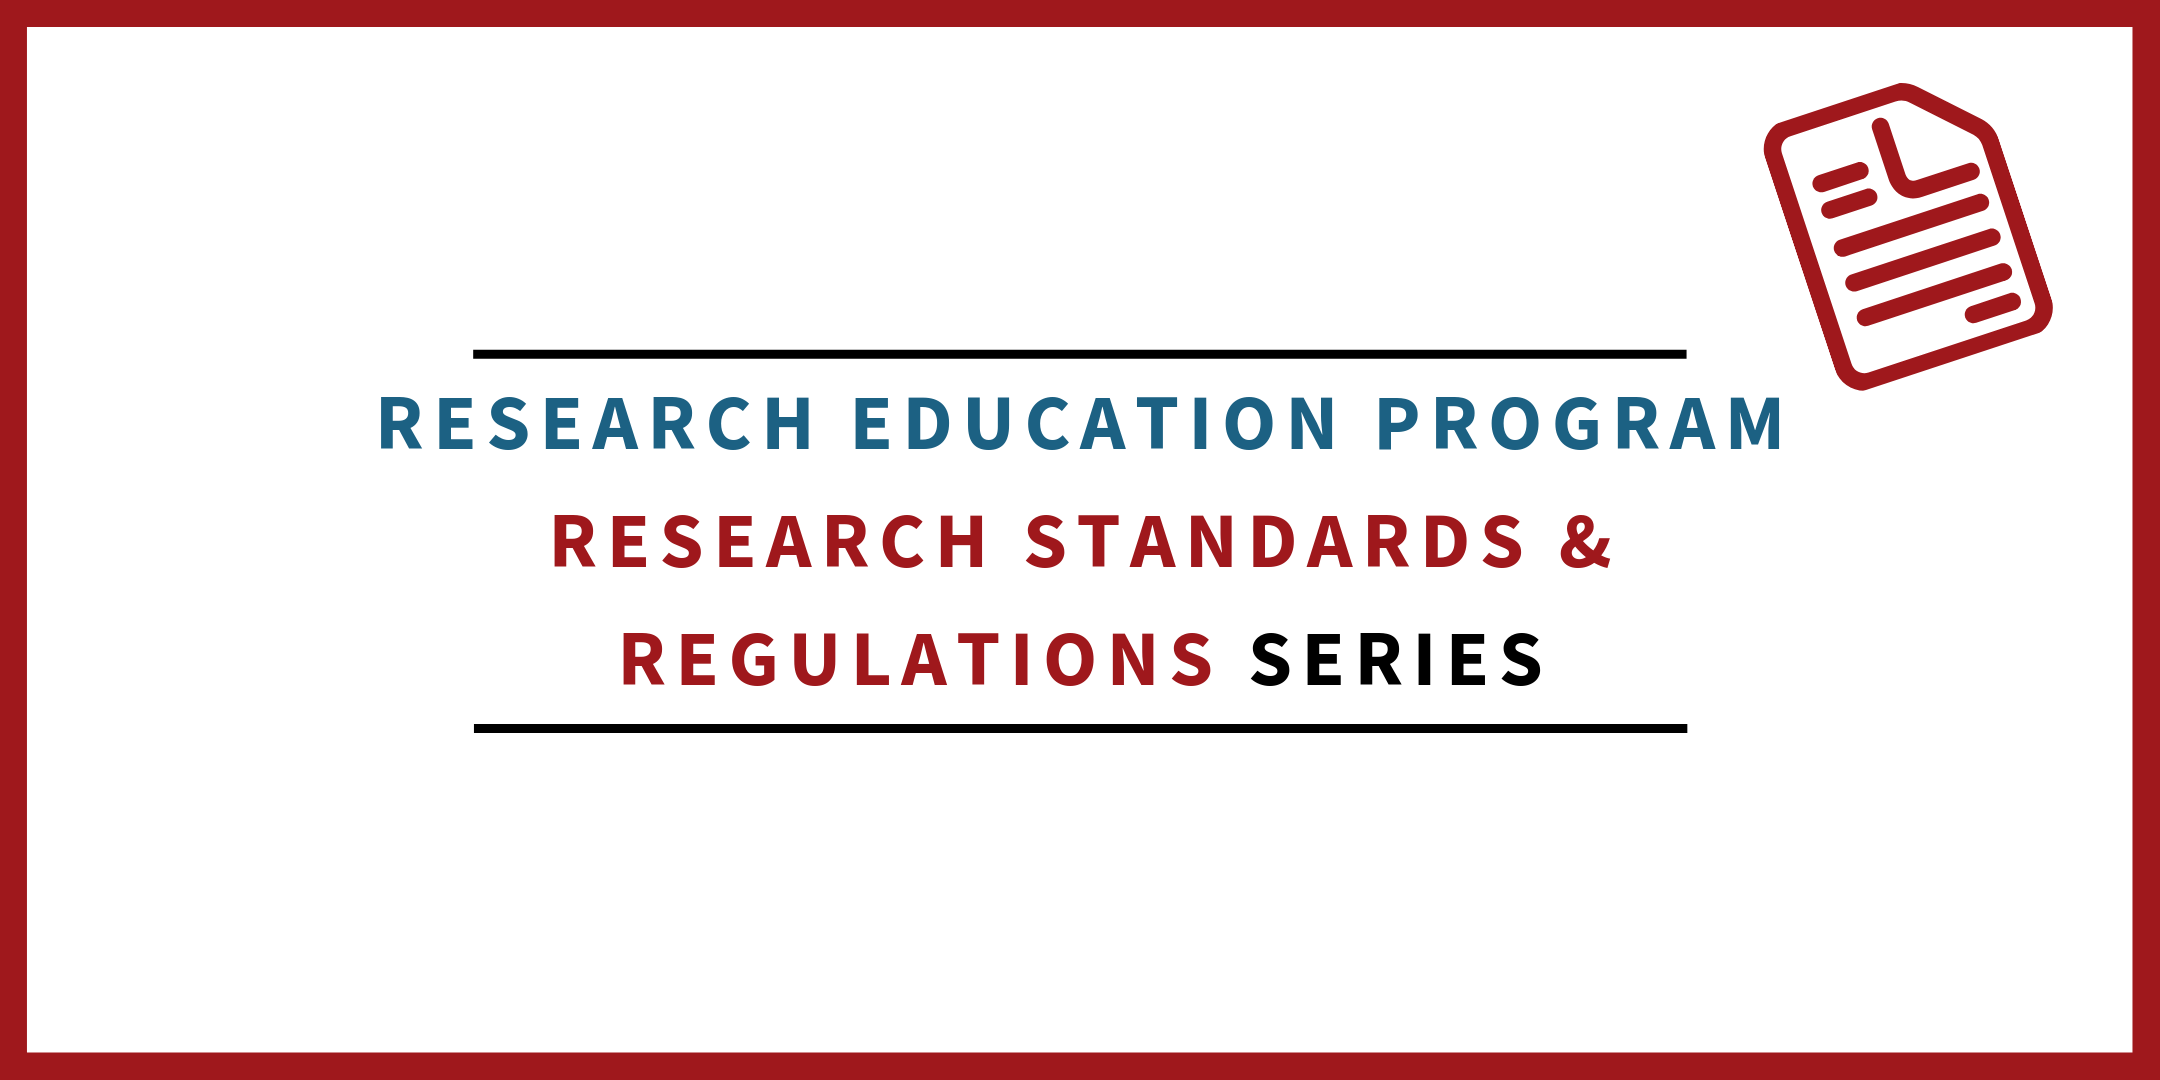 Research Regulations: Health Canada Updates